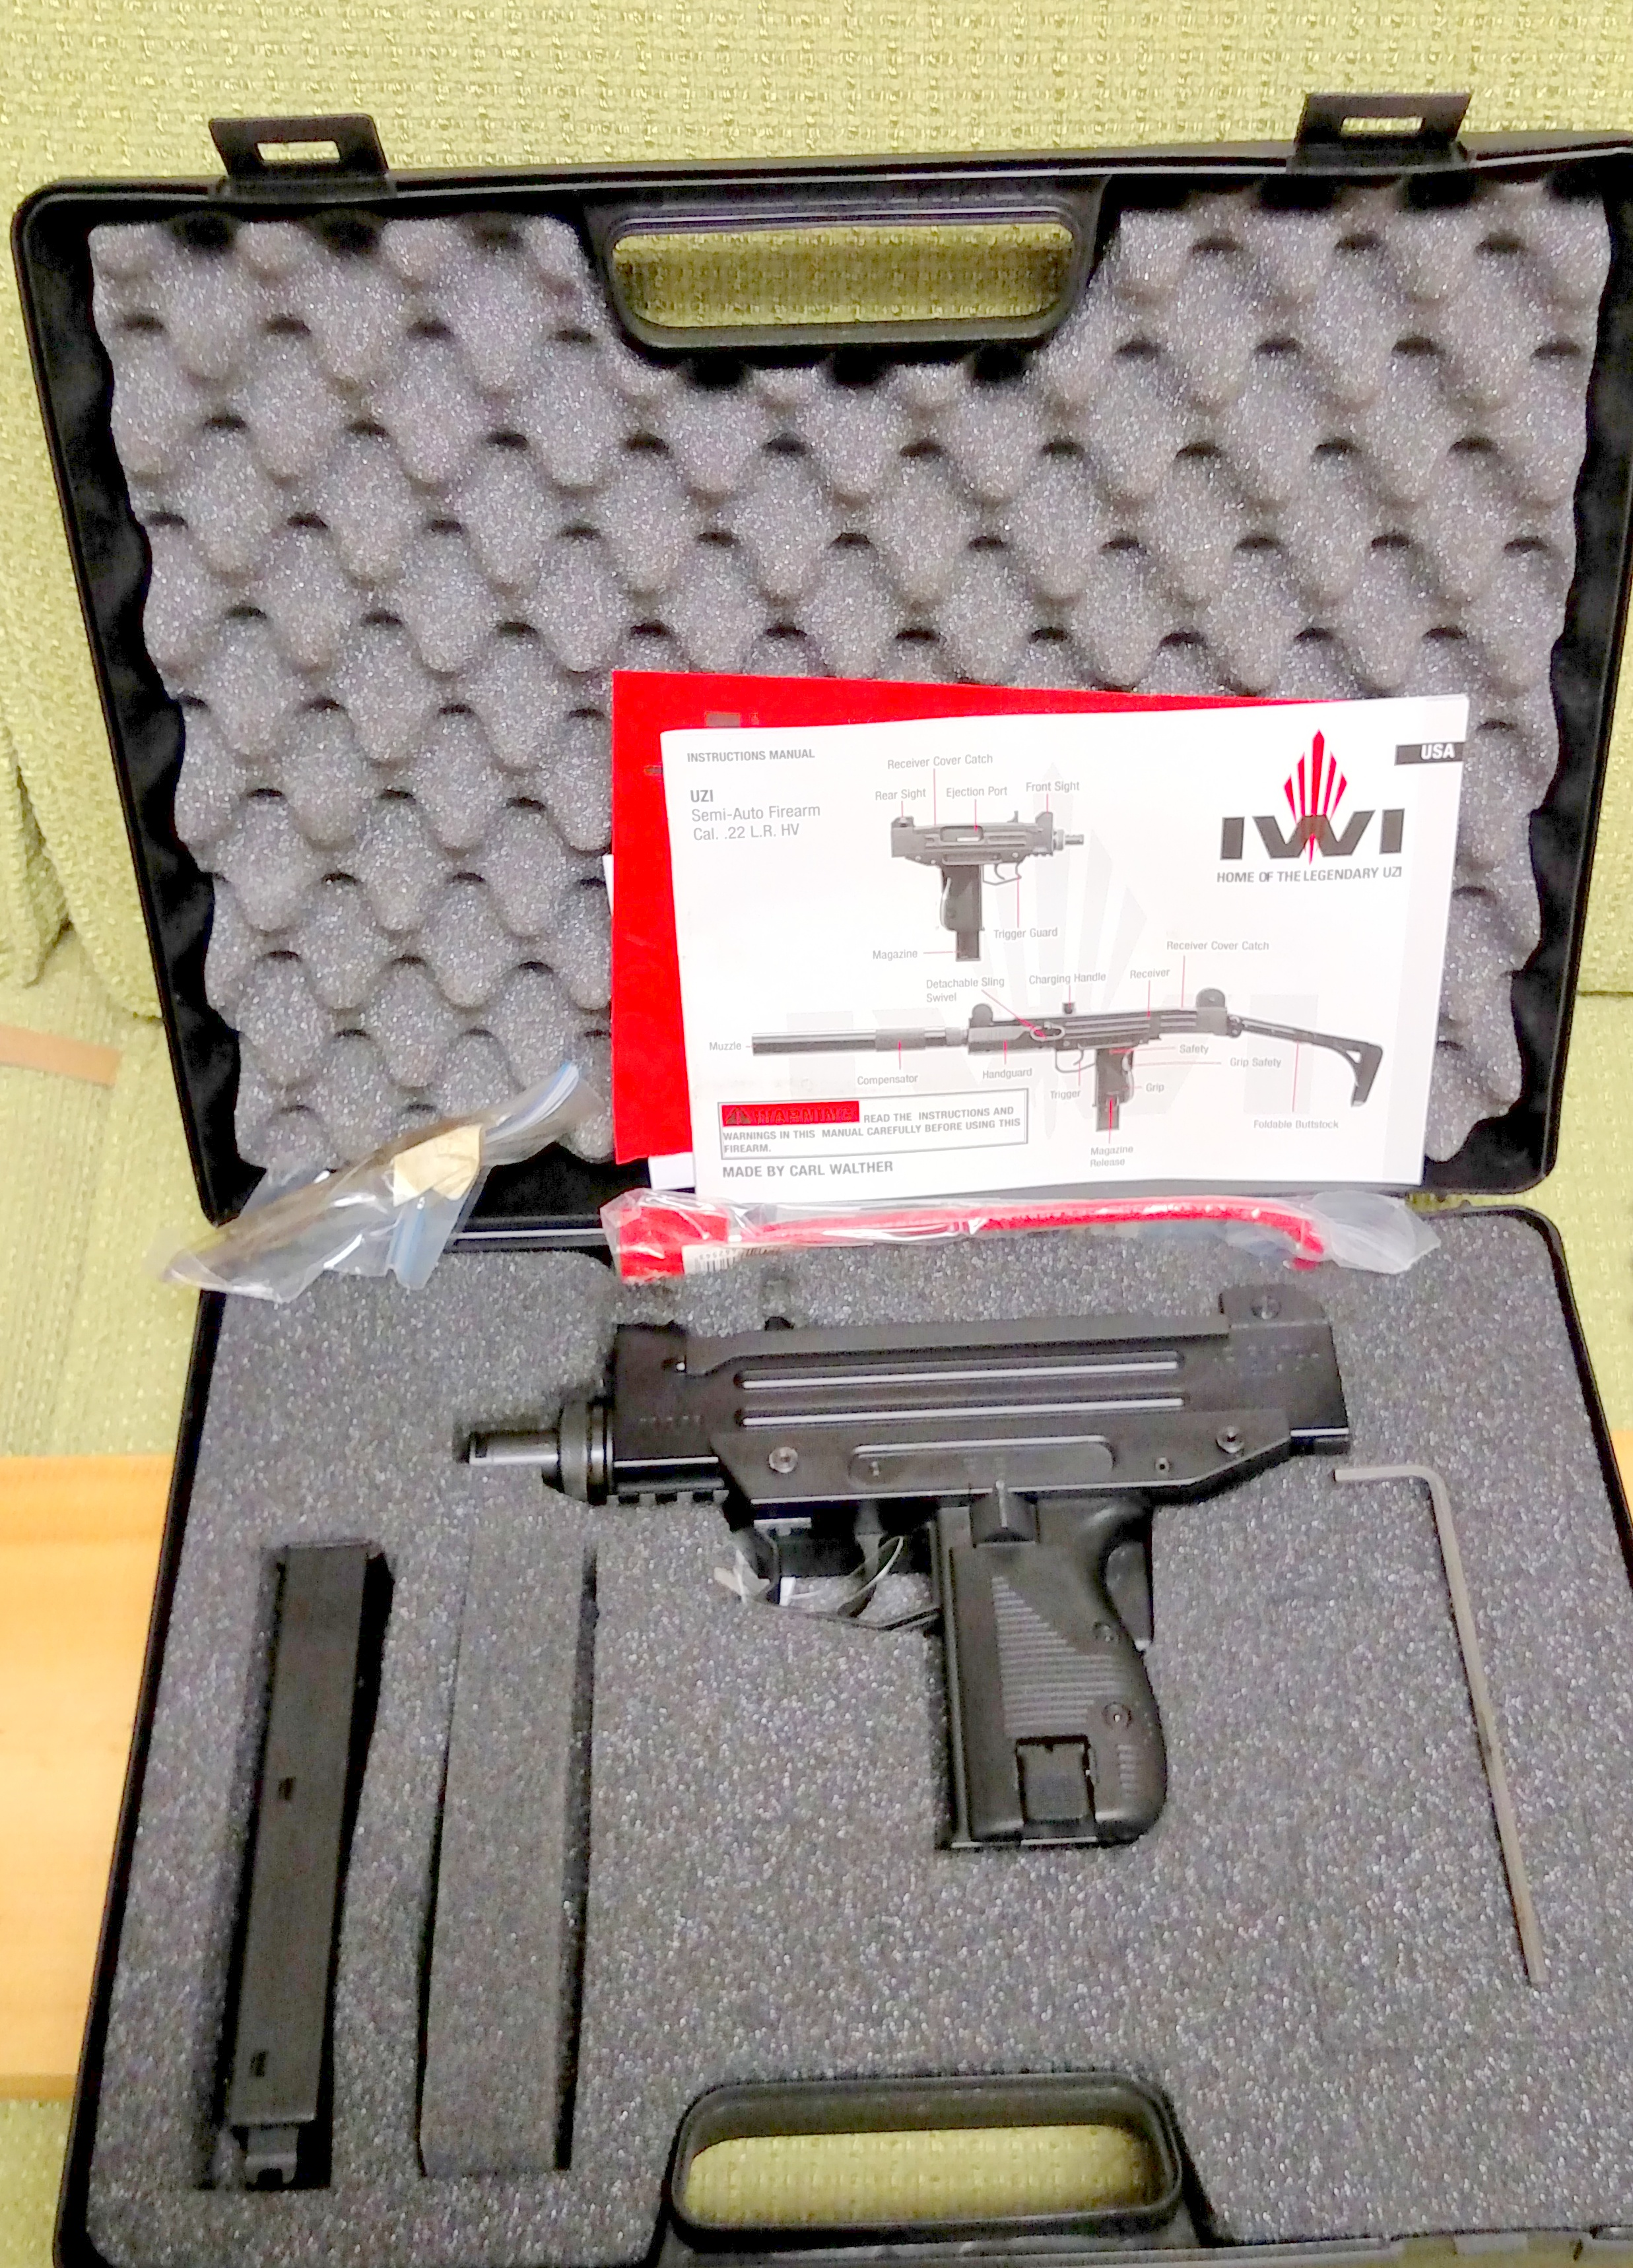 Brand Spanking New real deal IWI UZI PISTOL in 22LR (Auction